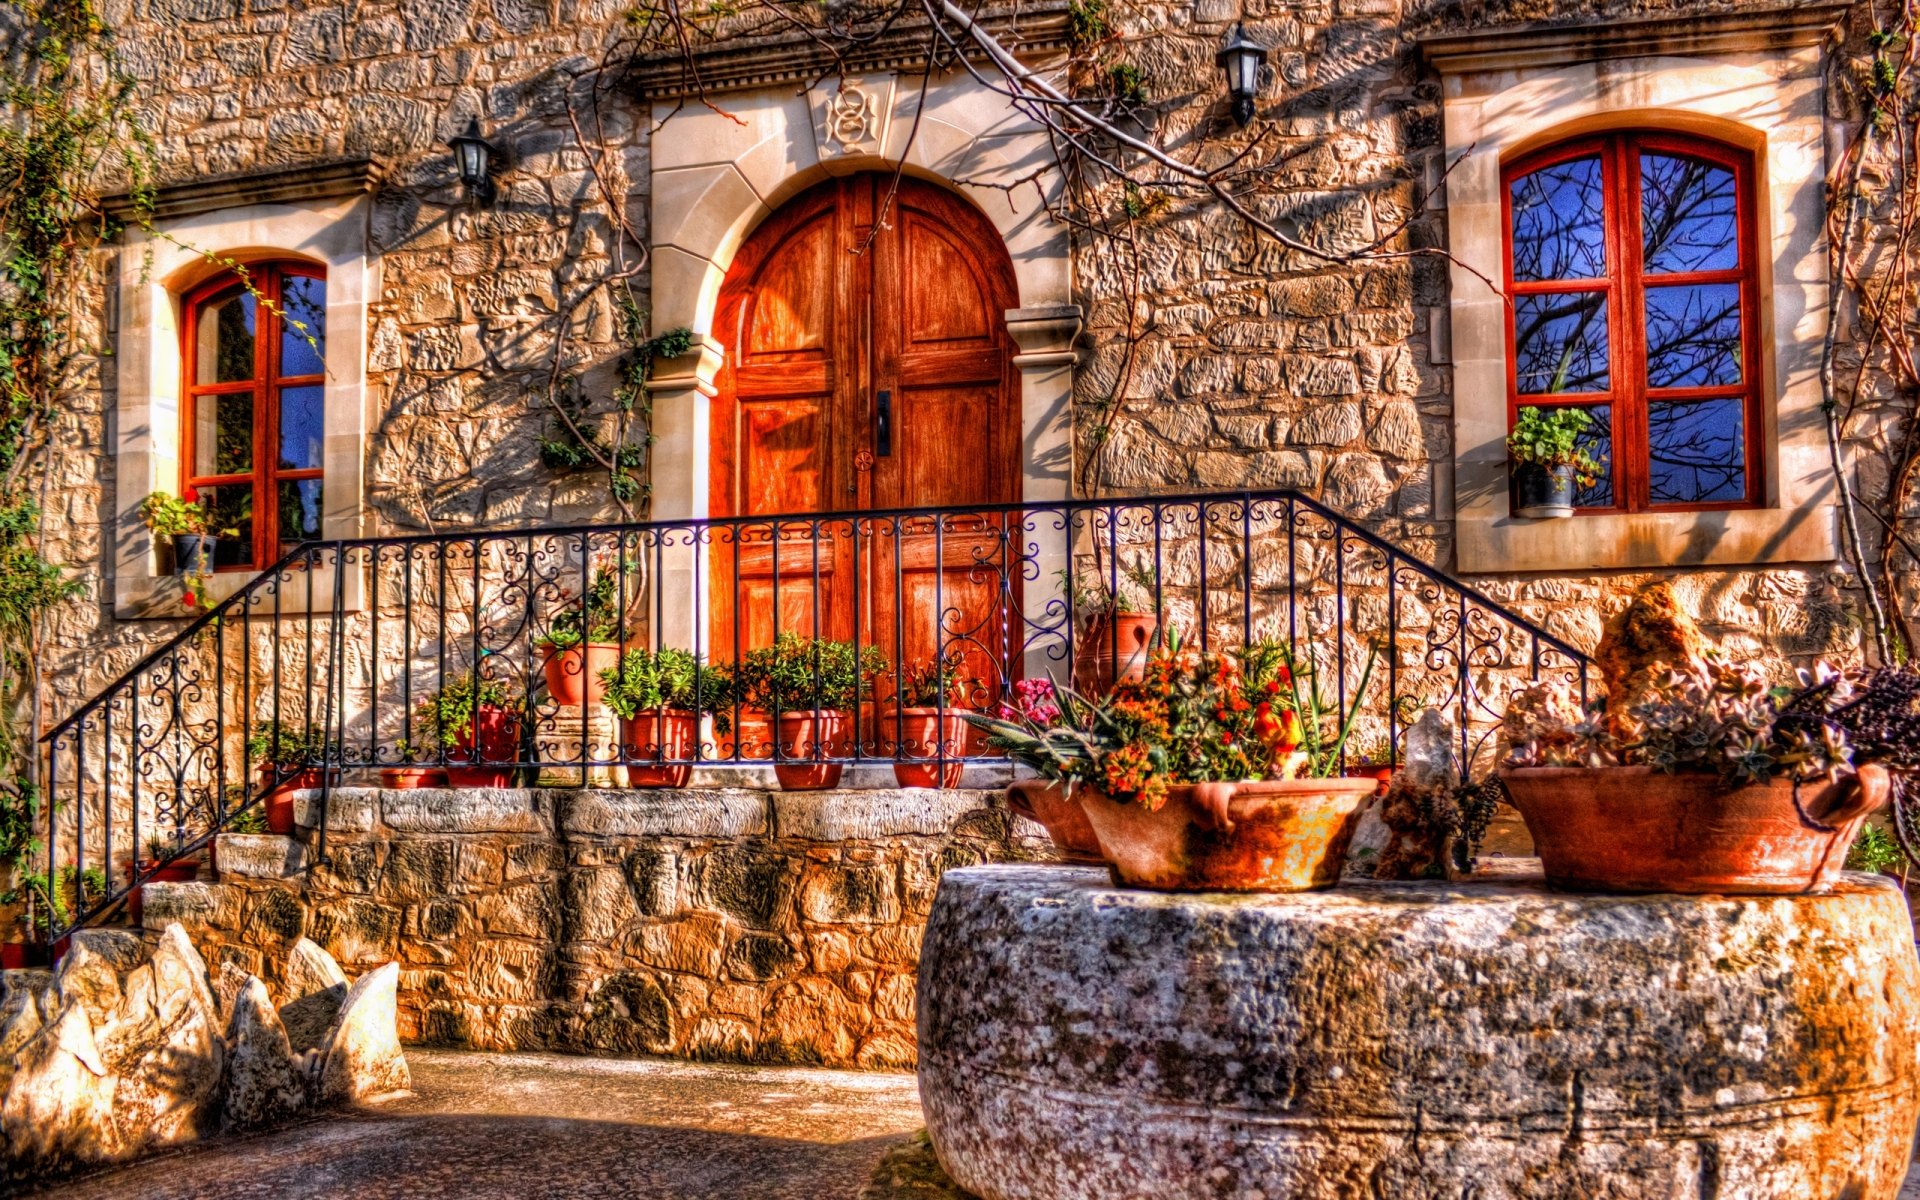 World architecture buildings apartments houses door hdr ...